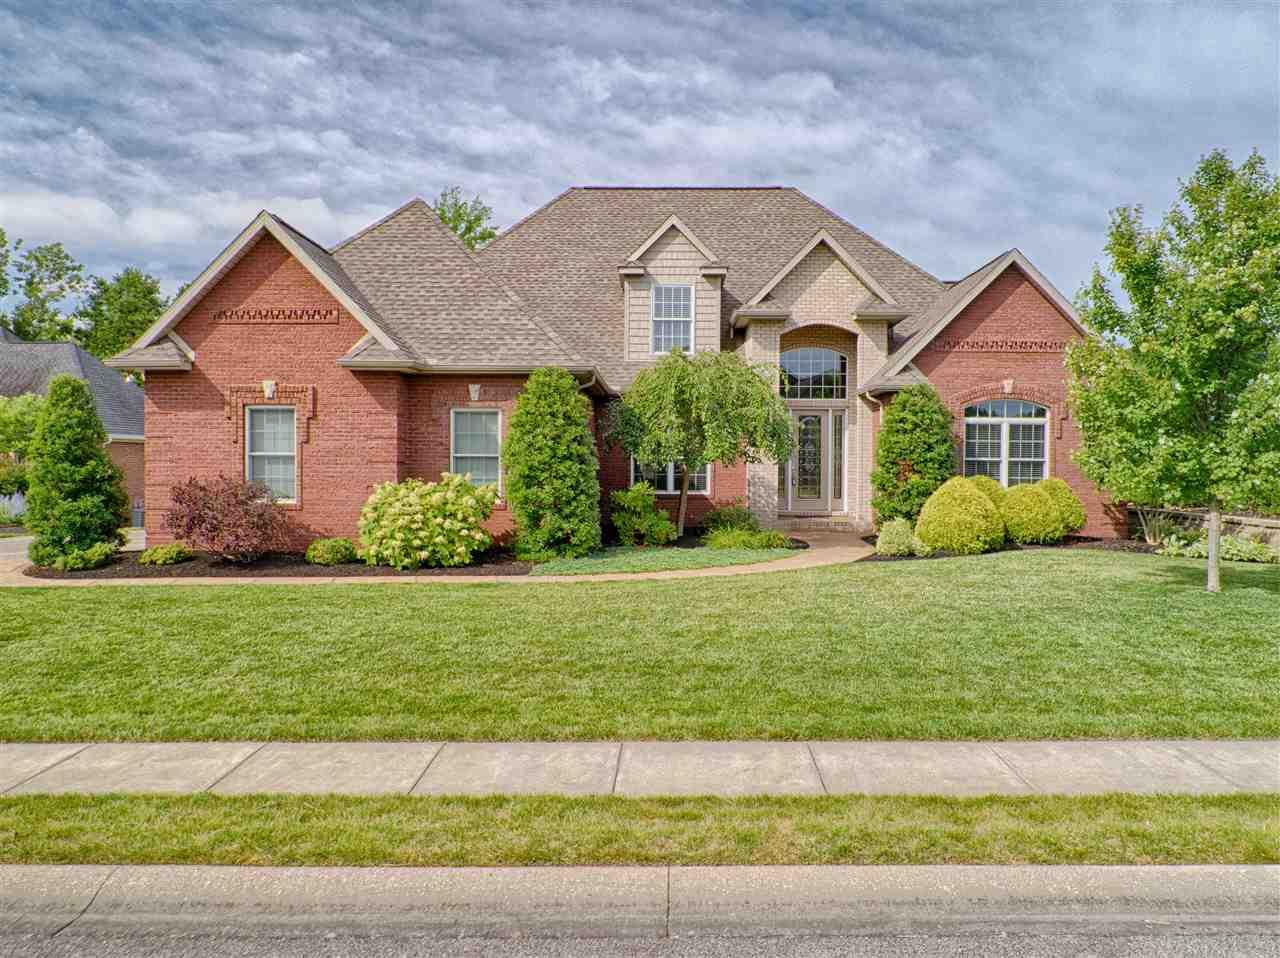 6445 Woodland Springs, Newburgh, IN 47630